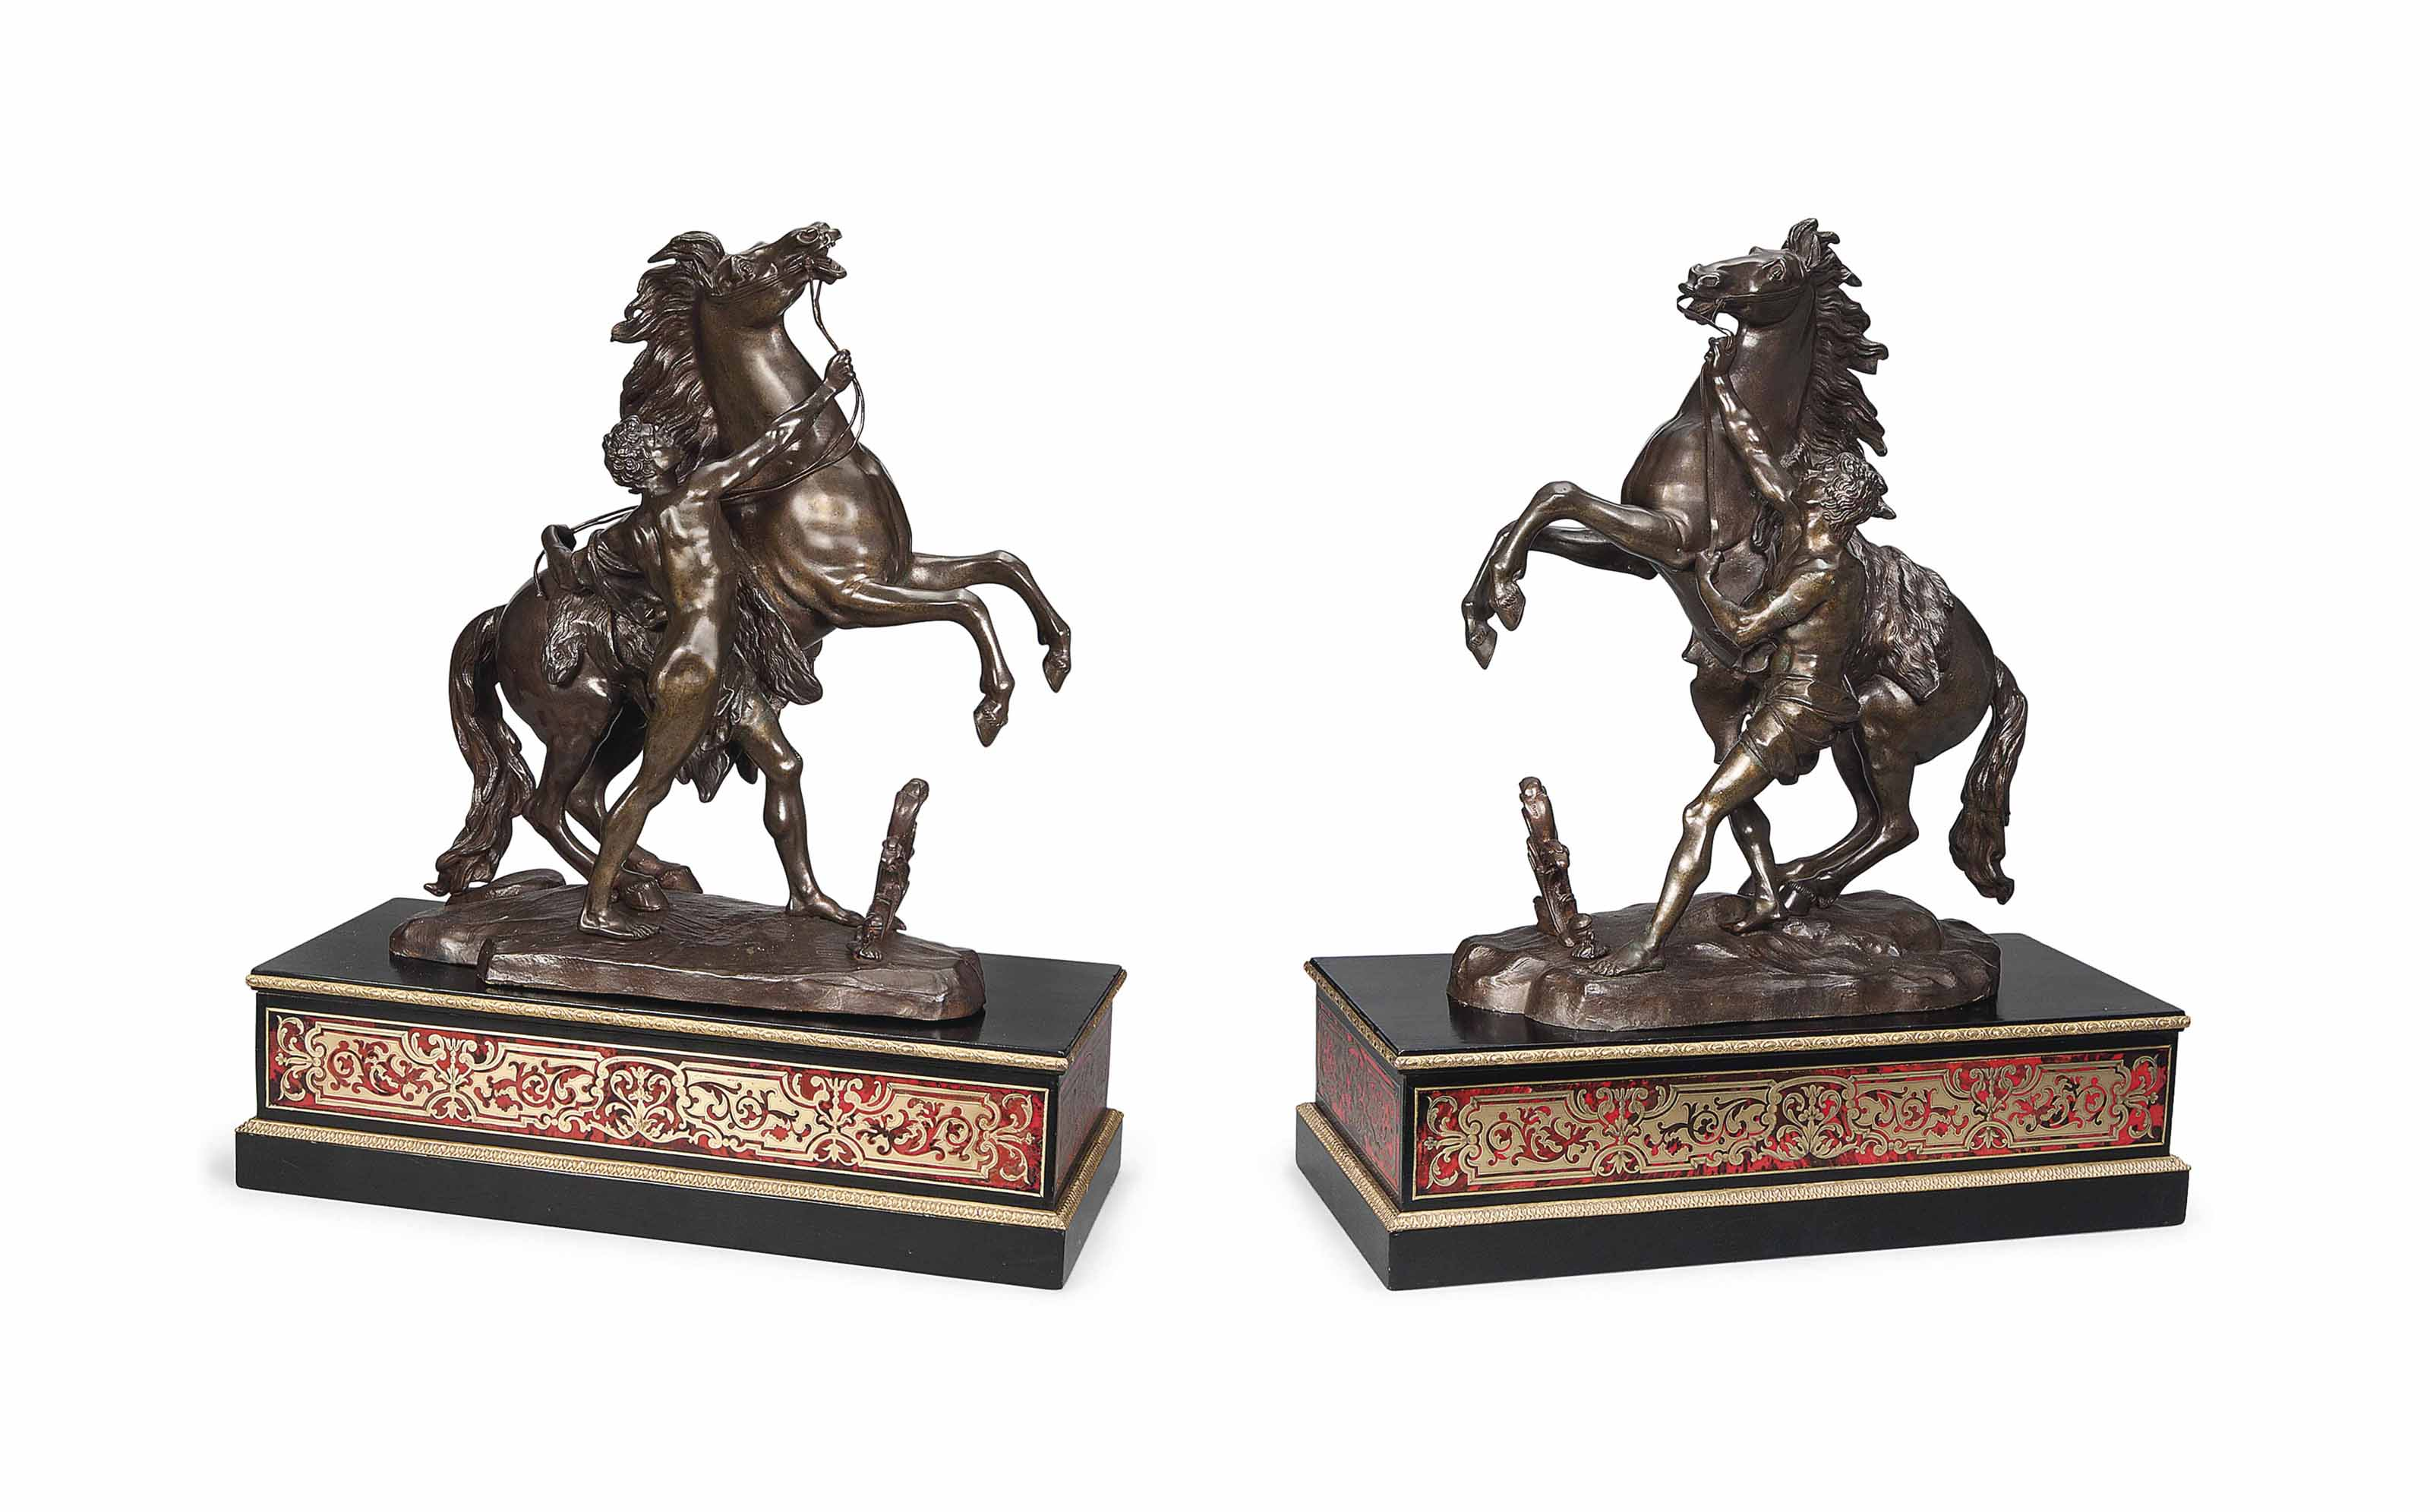 A LARGE PAIR OF FRENCH BRONZE MODELS OF THE MARLY HORSES